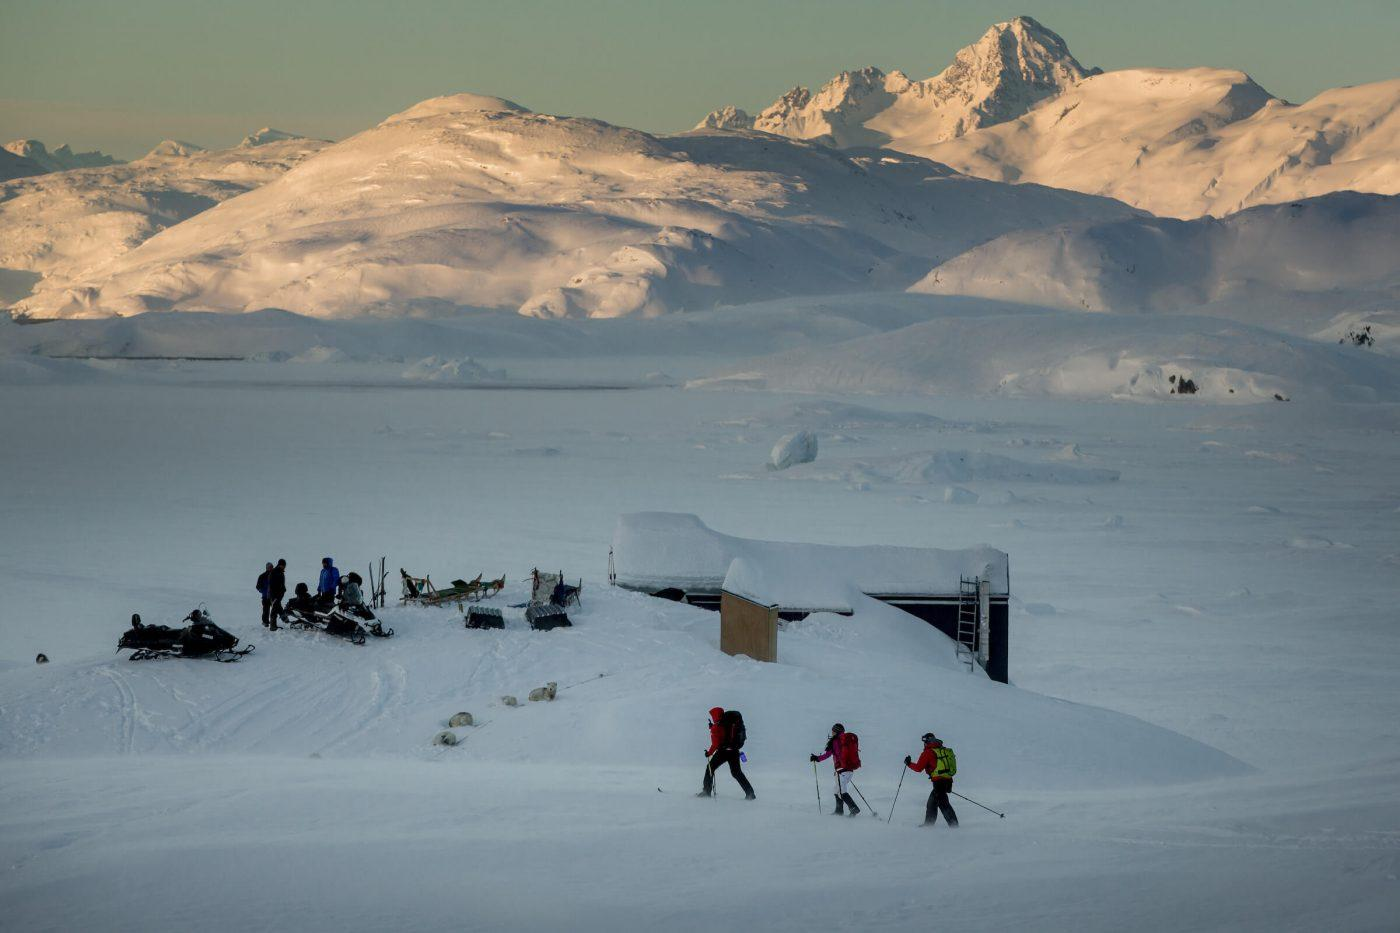 Cross country skiers approaching the Travellodge Greenland hut at Sermilik ice fjord in East Greenland. By Mads Pihl